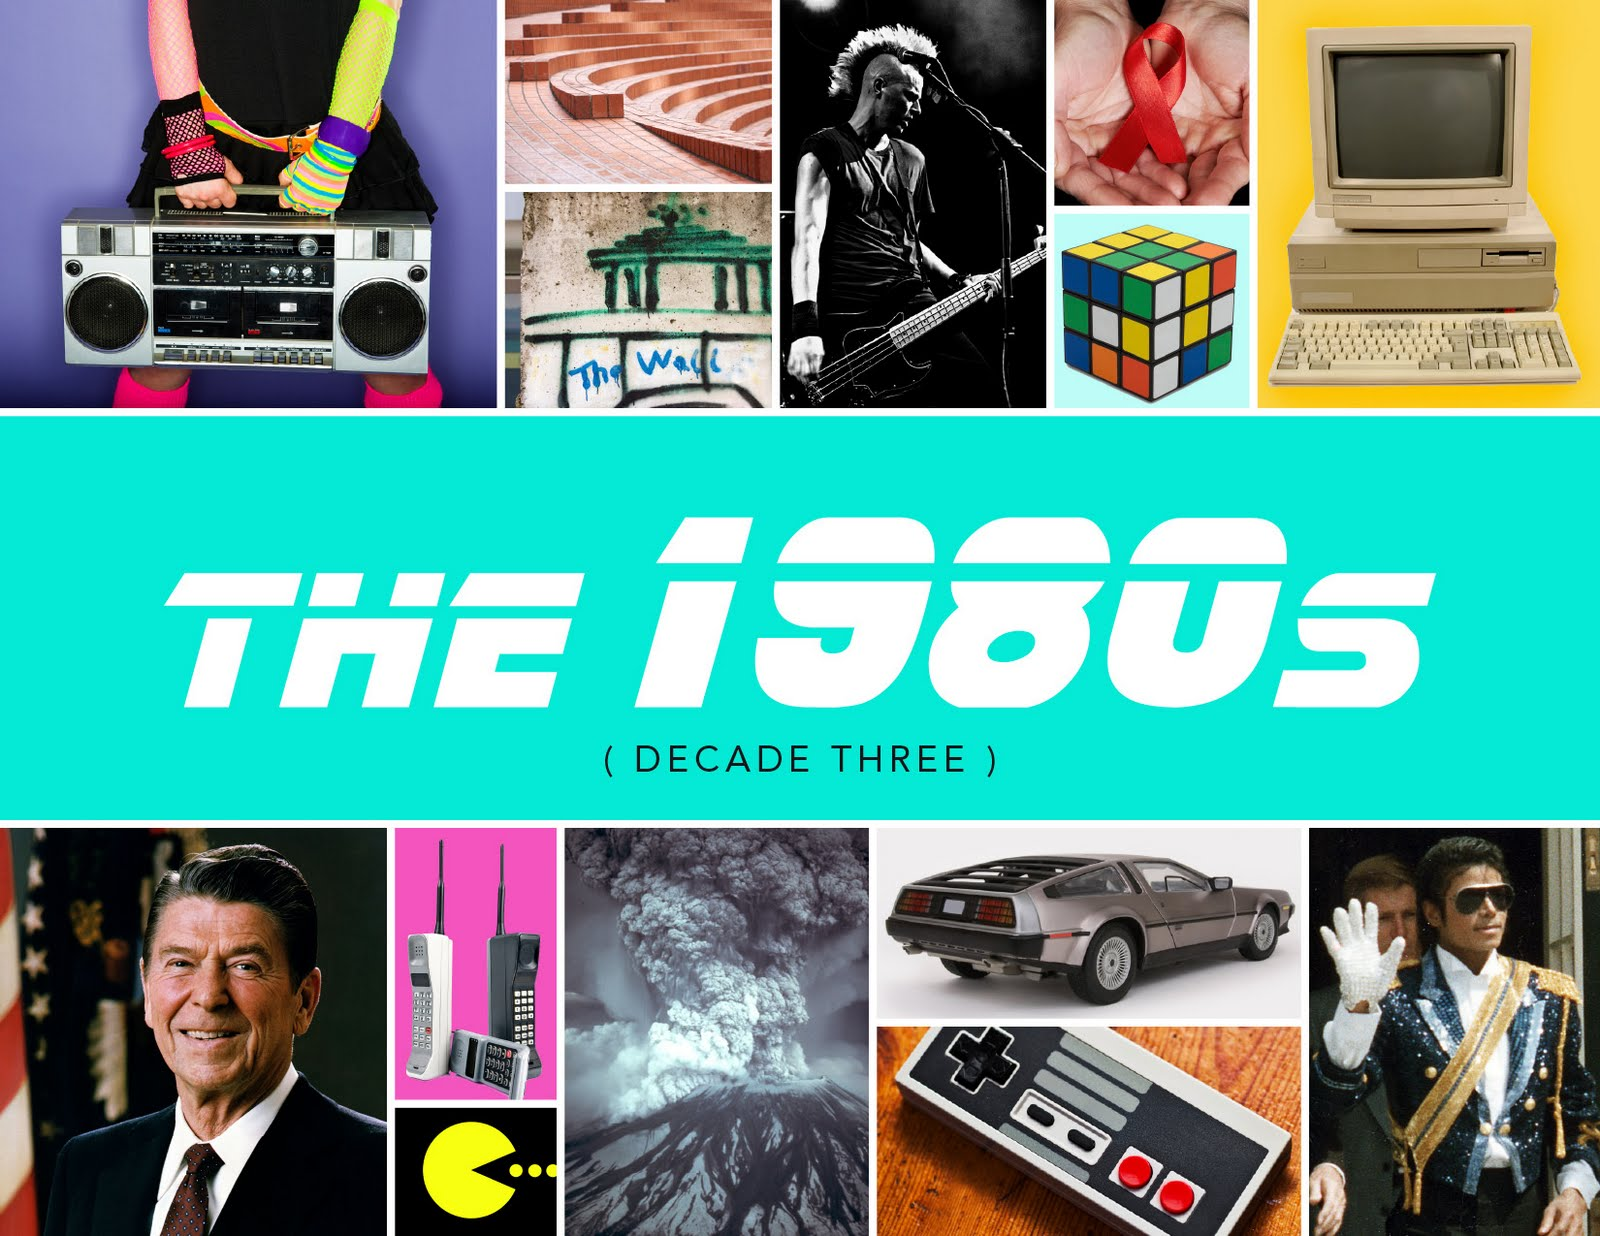 music in the 1980s A history of britain in the 1980s by graham stewart - review  b ritain changed more in the 1980s than in almost any recent decade  whether writing about politics or pop music, stewart.